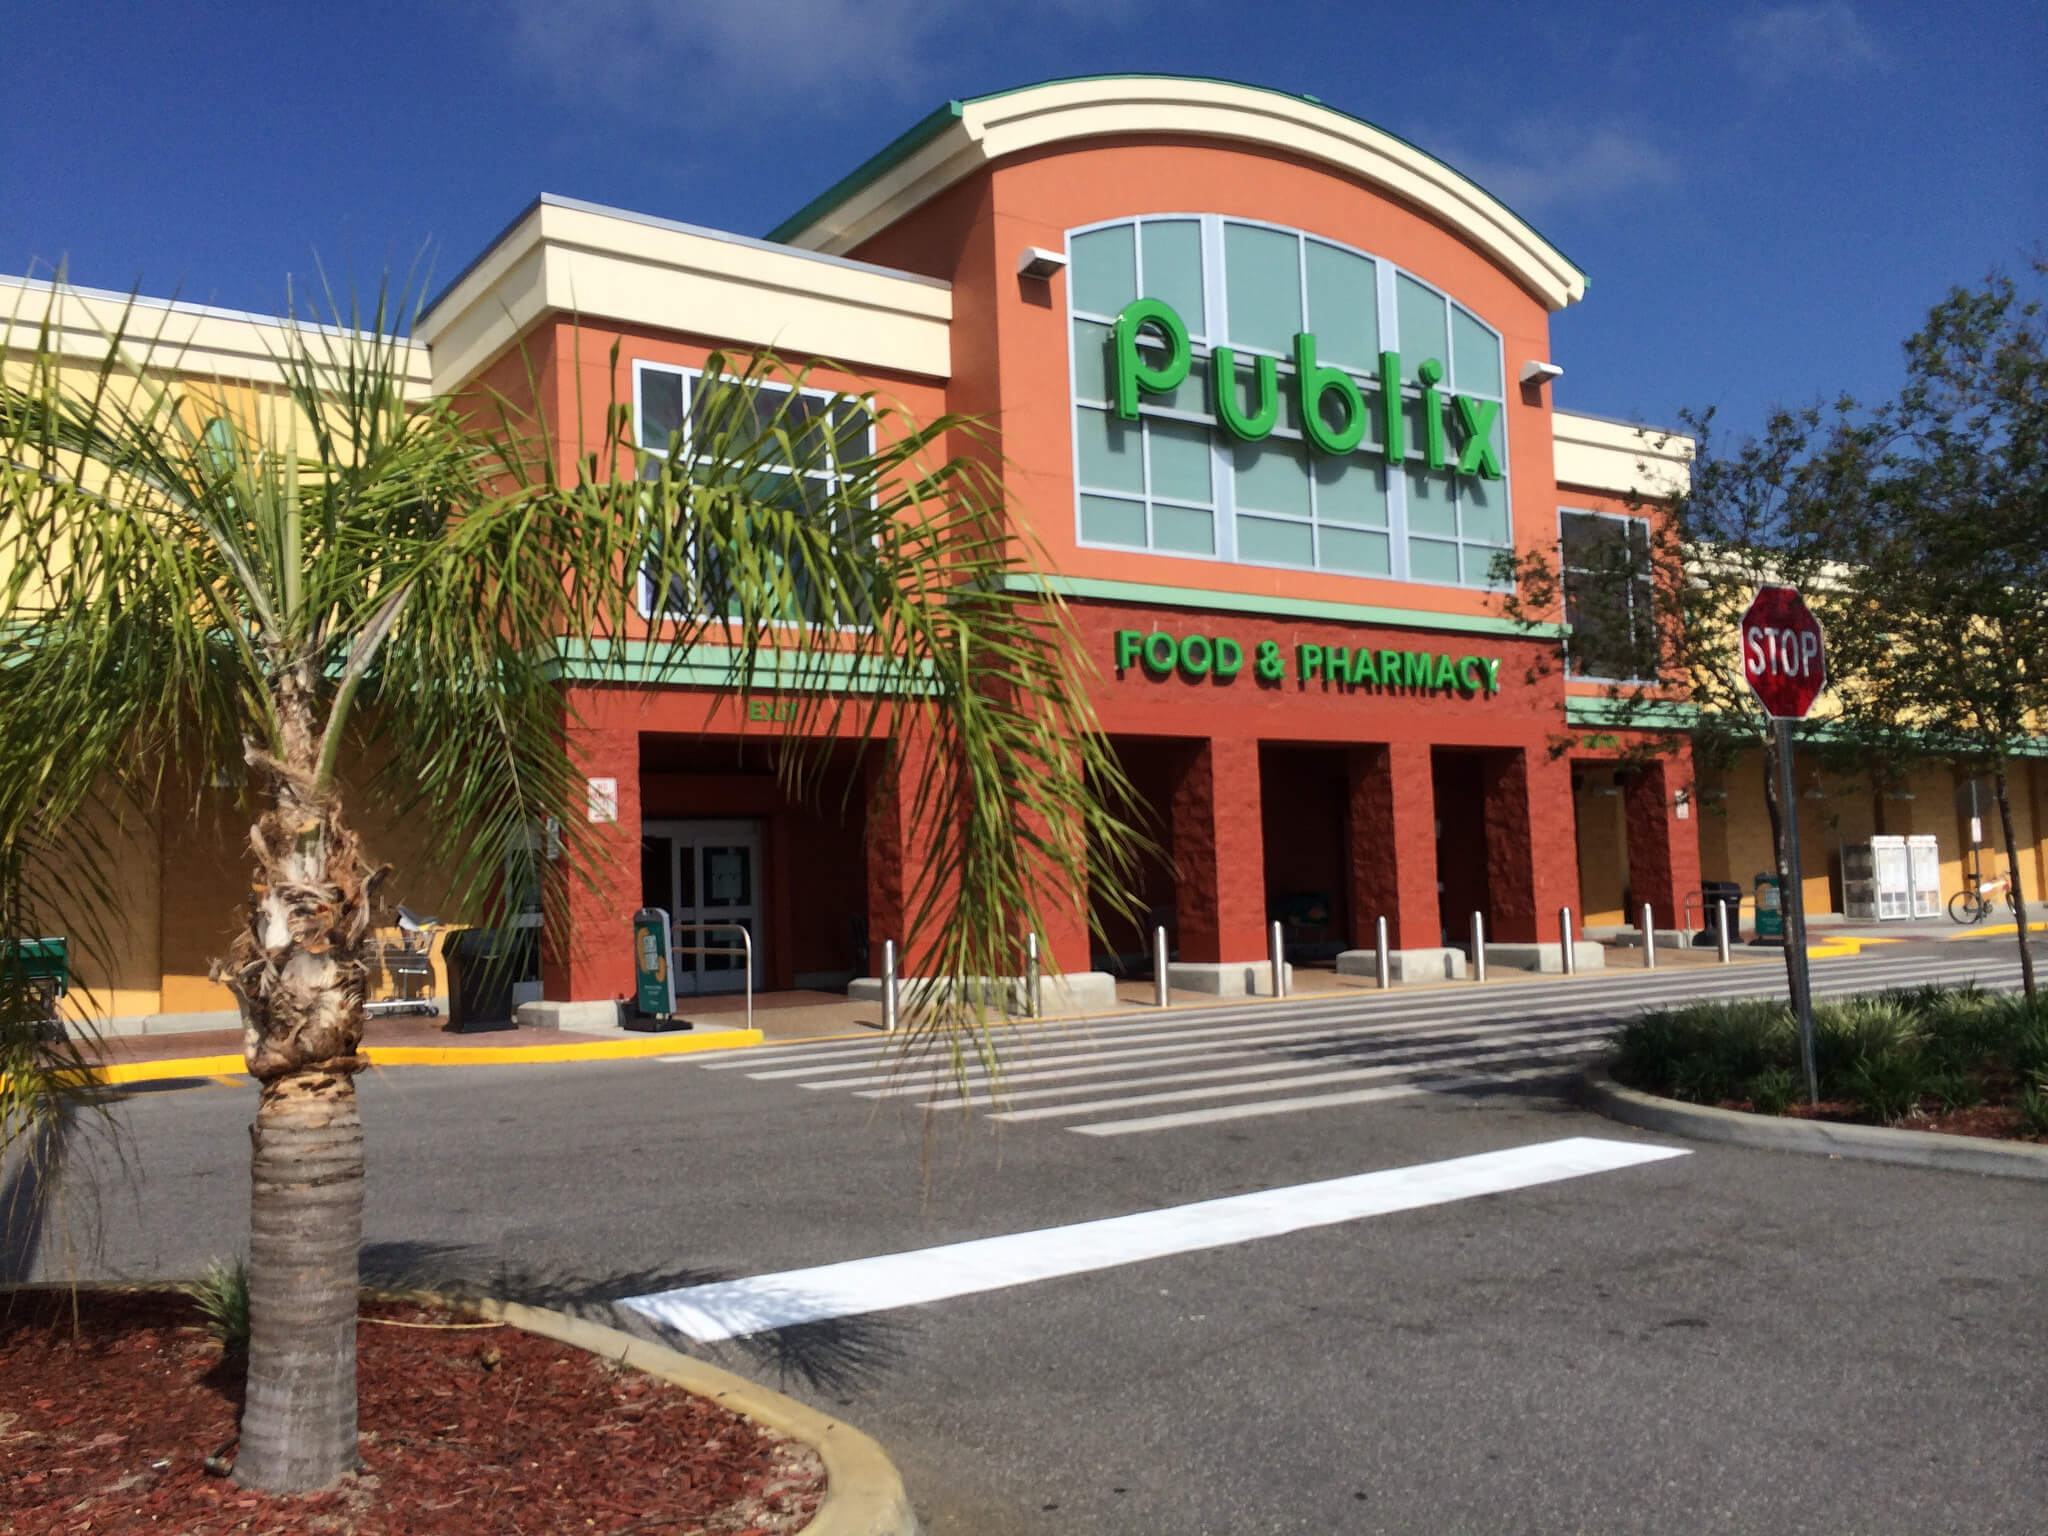 Publix Super Markets gives back by partnering with hunger